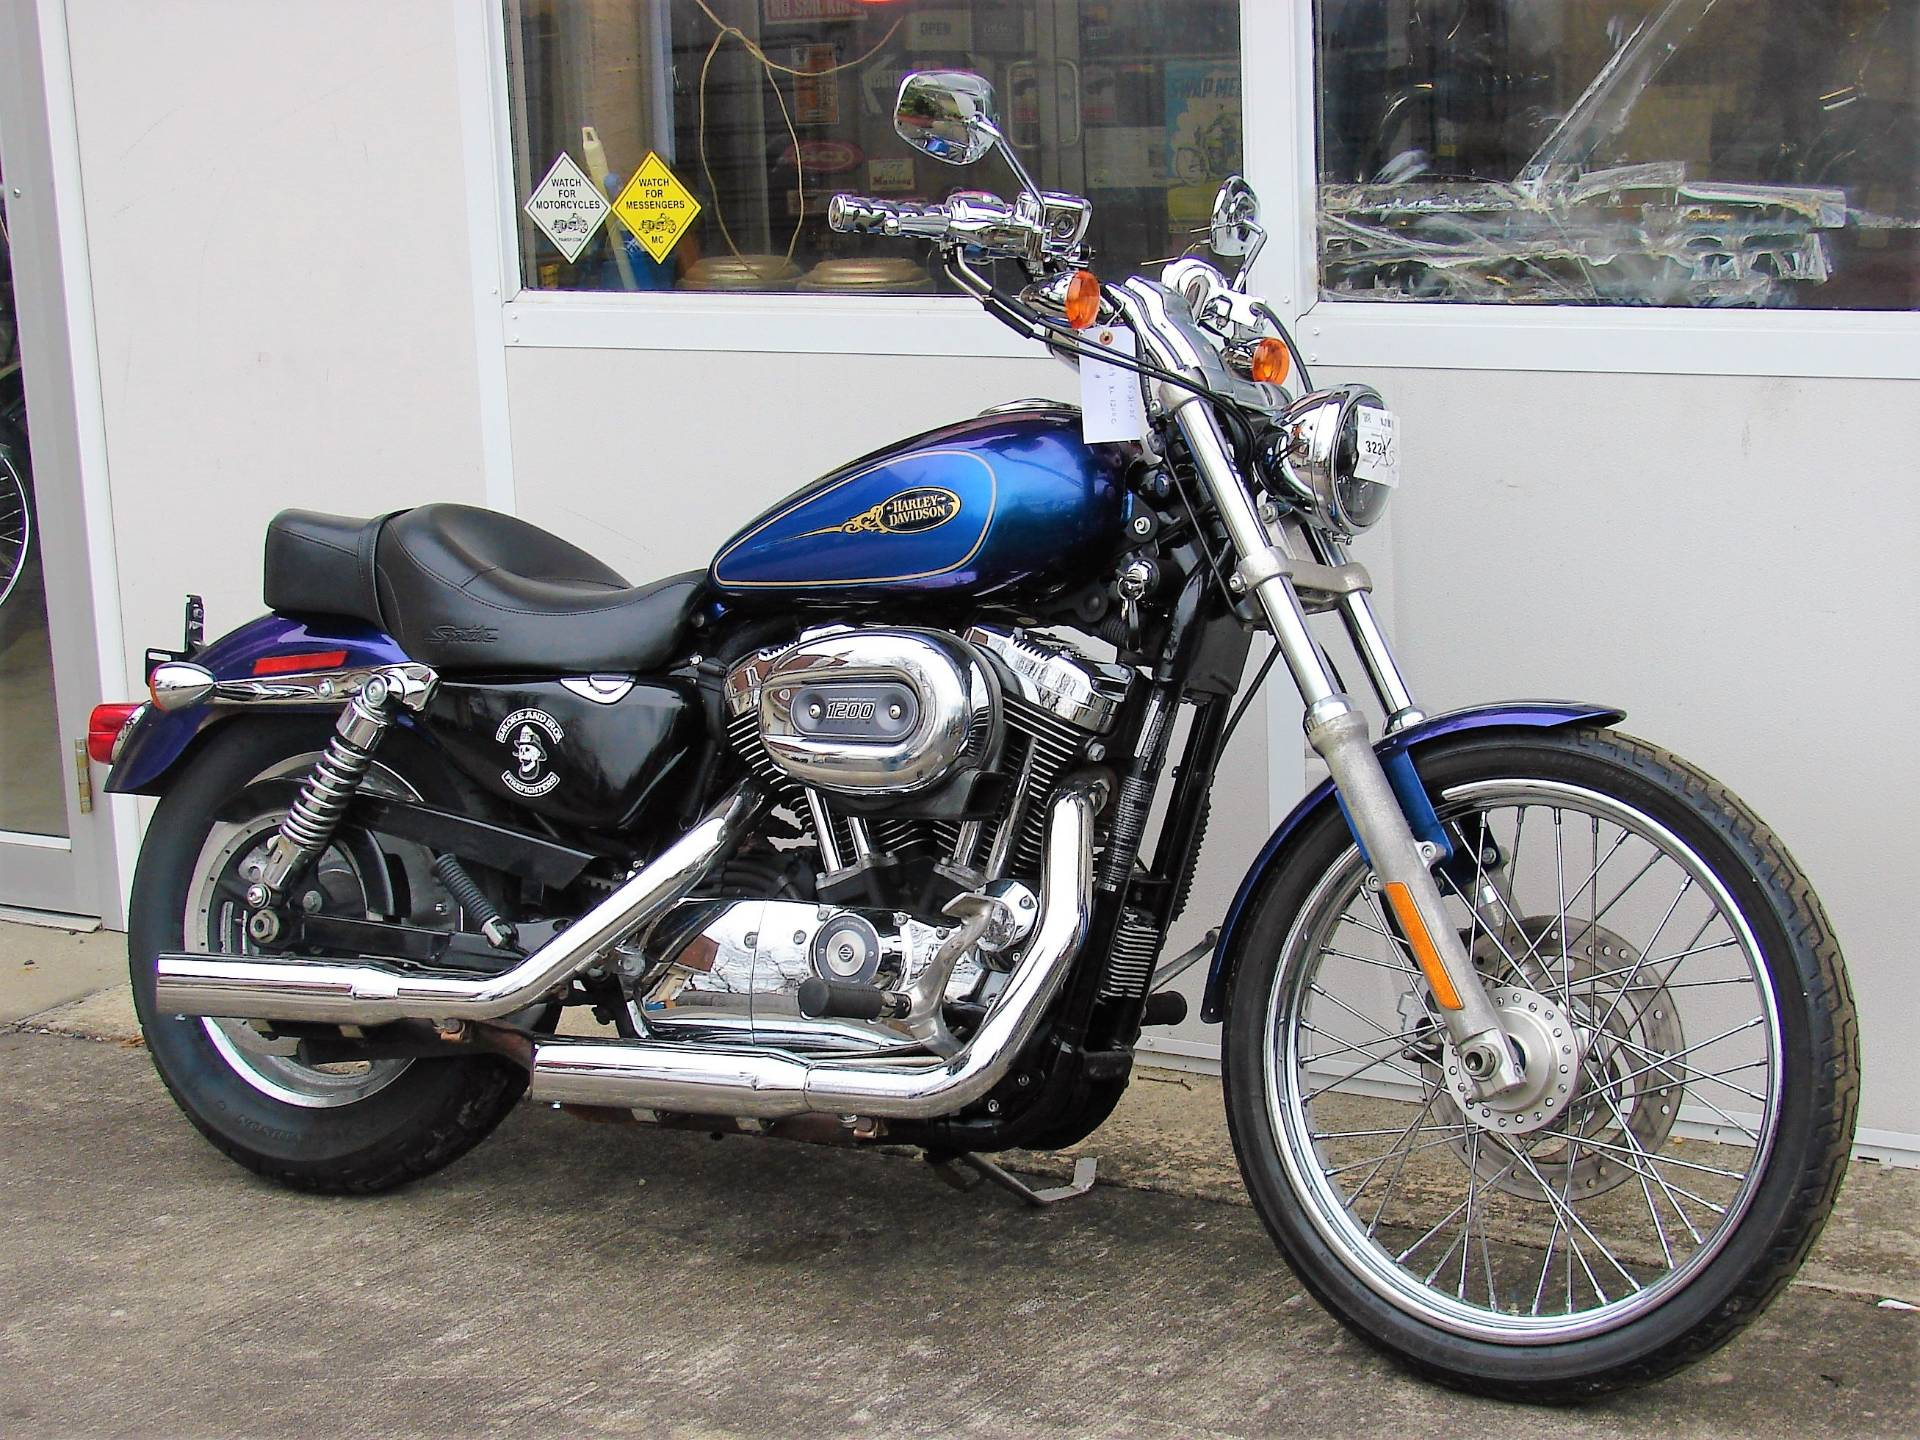 2009 Harley-Davidson XL 1200C Sportster in Williamstown, New Jersey - Photo 5